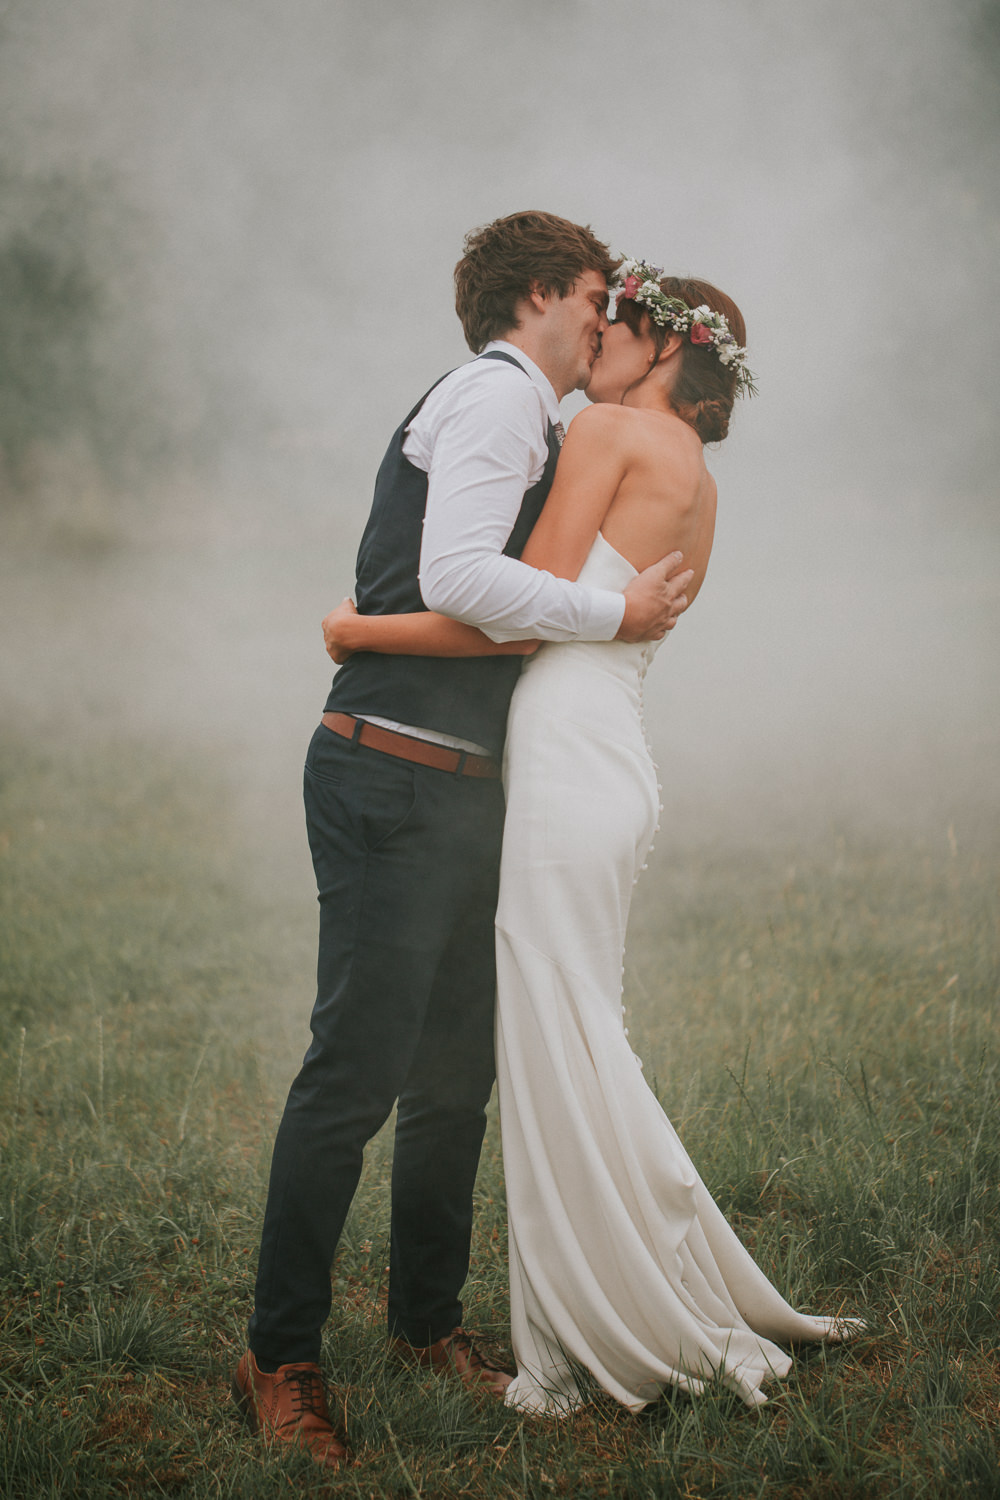 Smoke Bomb Summer Boho Outdoor Wedding A Little Picture